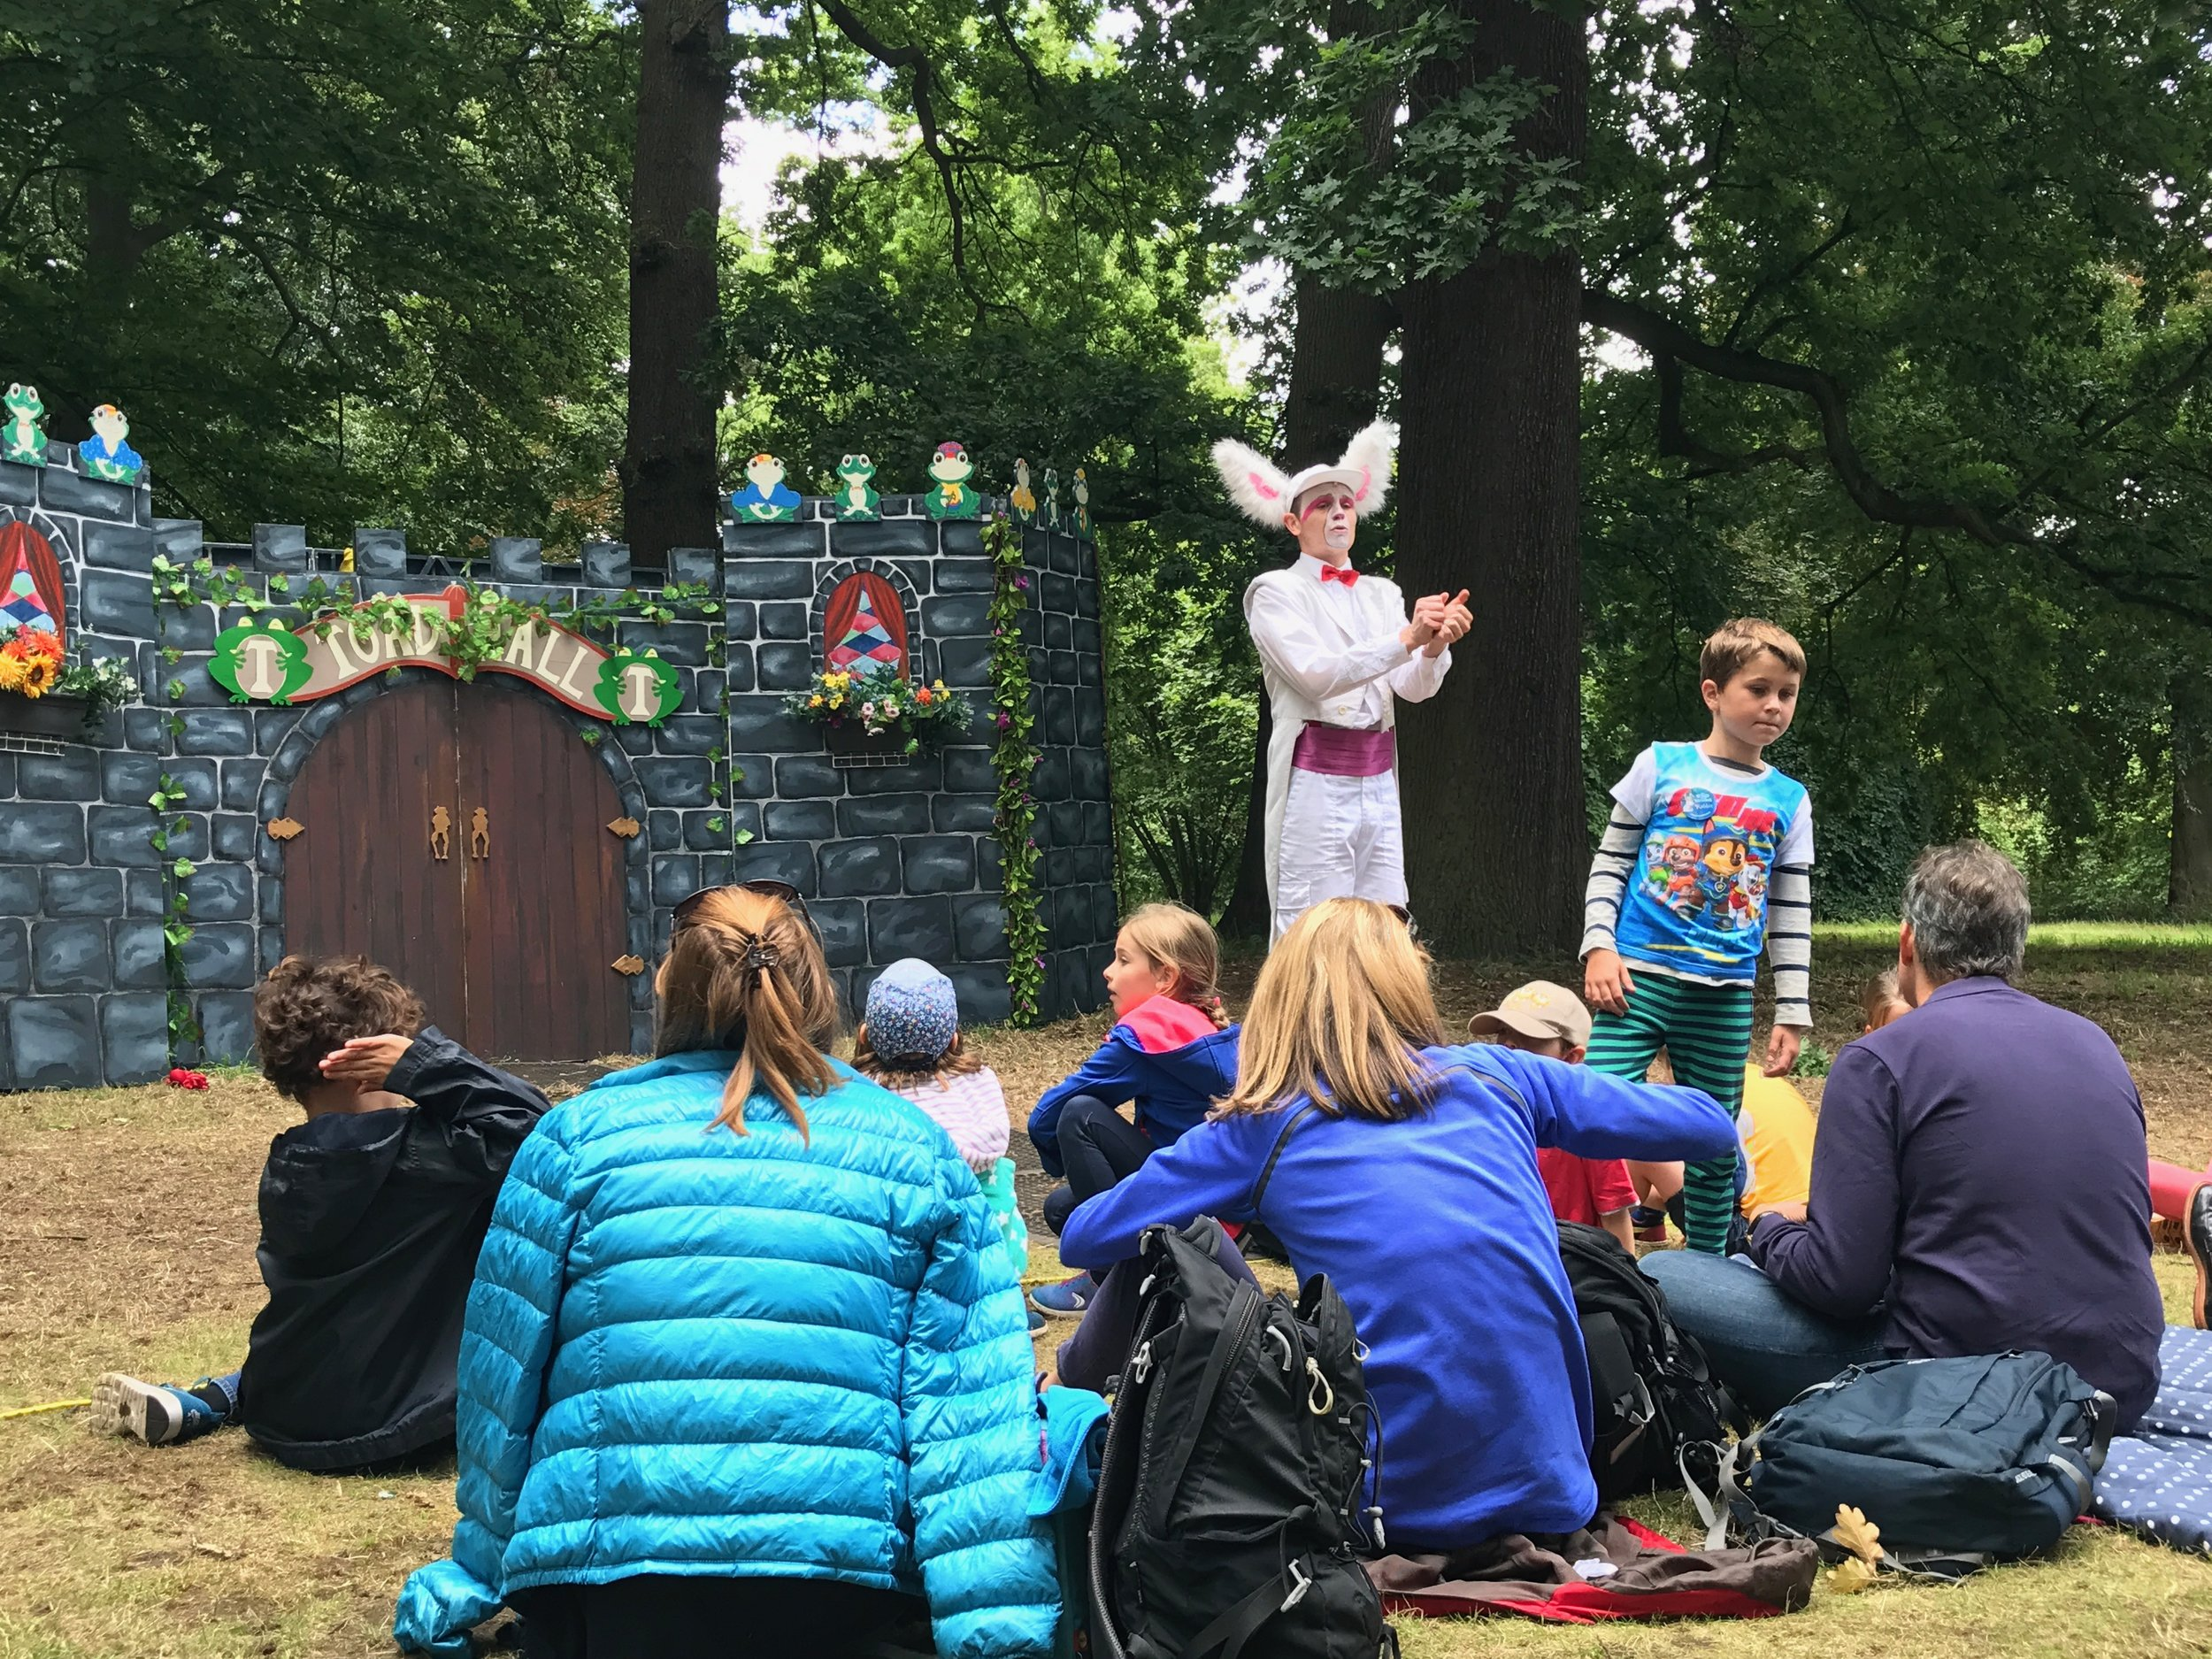 Wind in the Willows tour comes to Ardingly's Wakehurst Place this summer